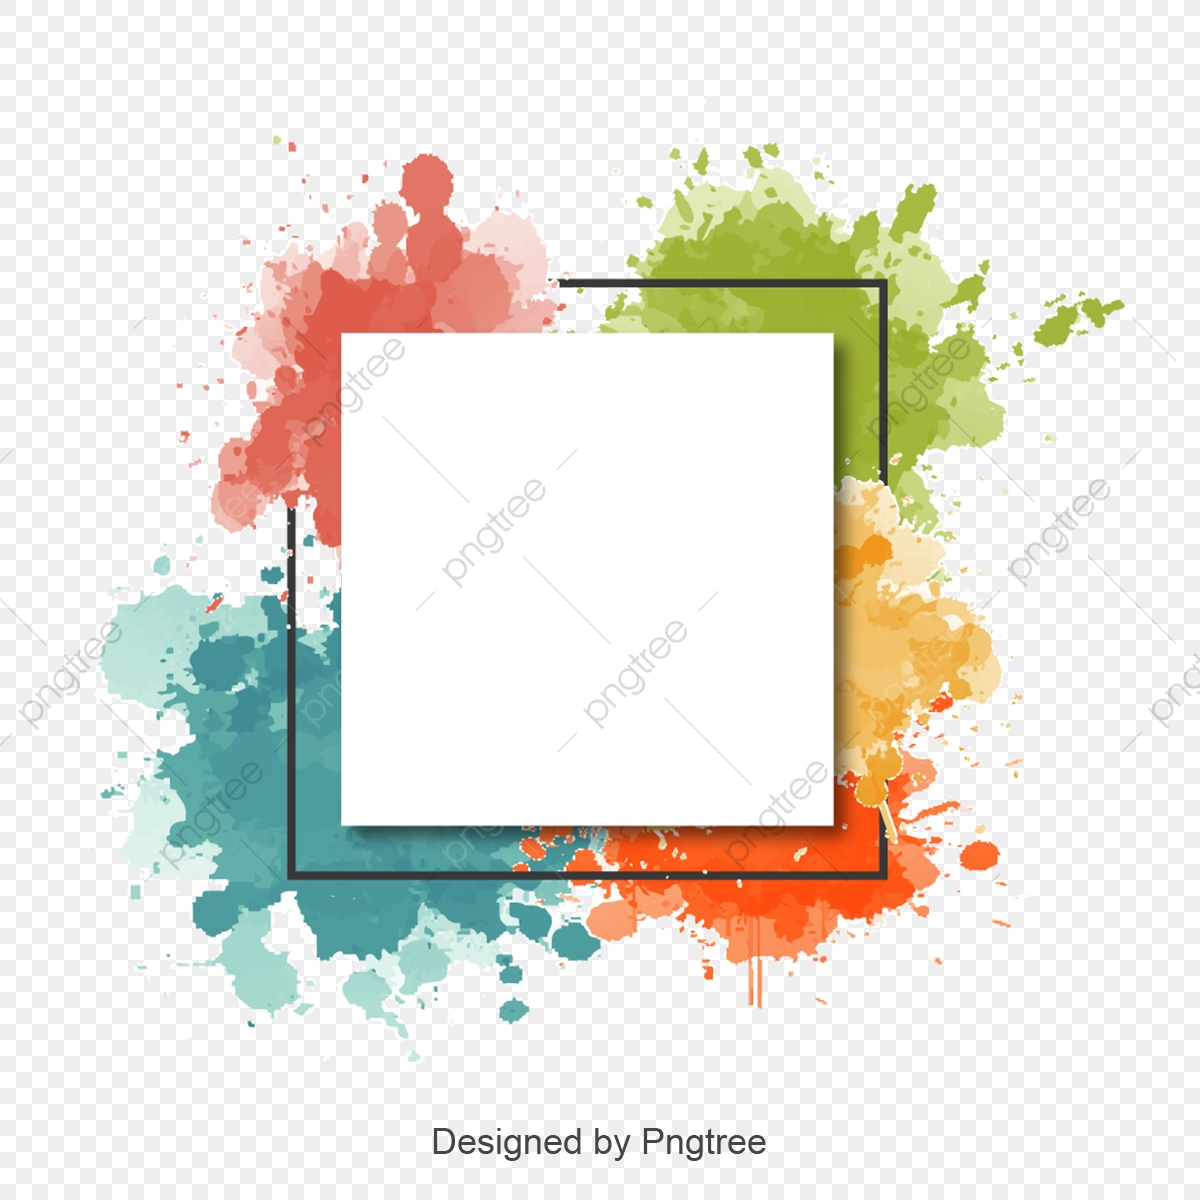 Watercolor, Frame PNG and Vector with Transparent Background for